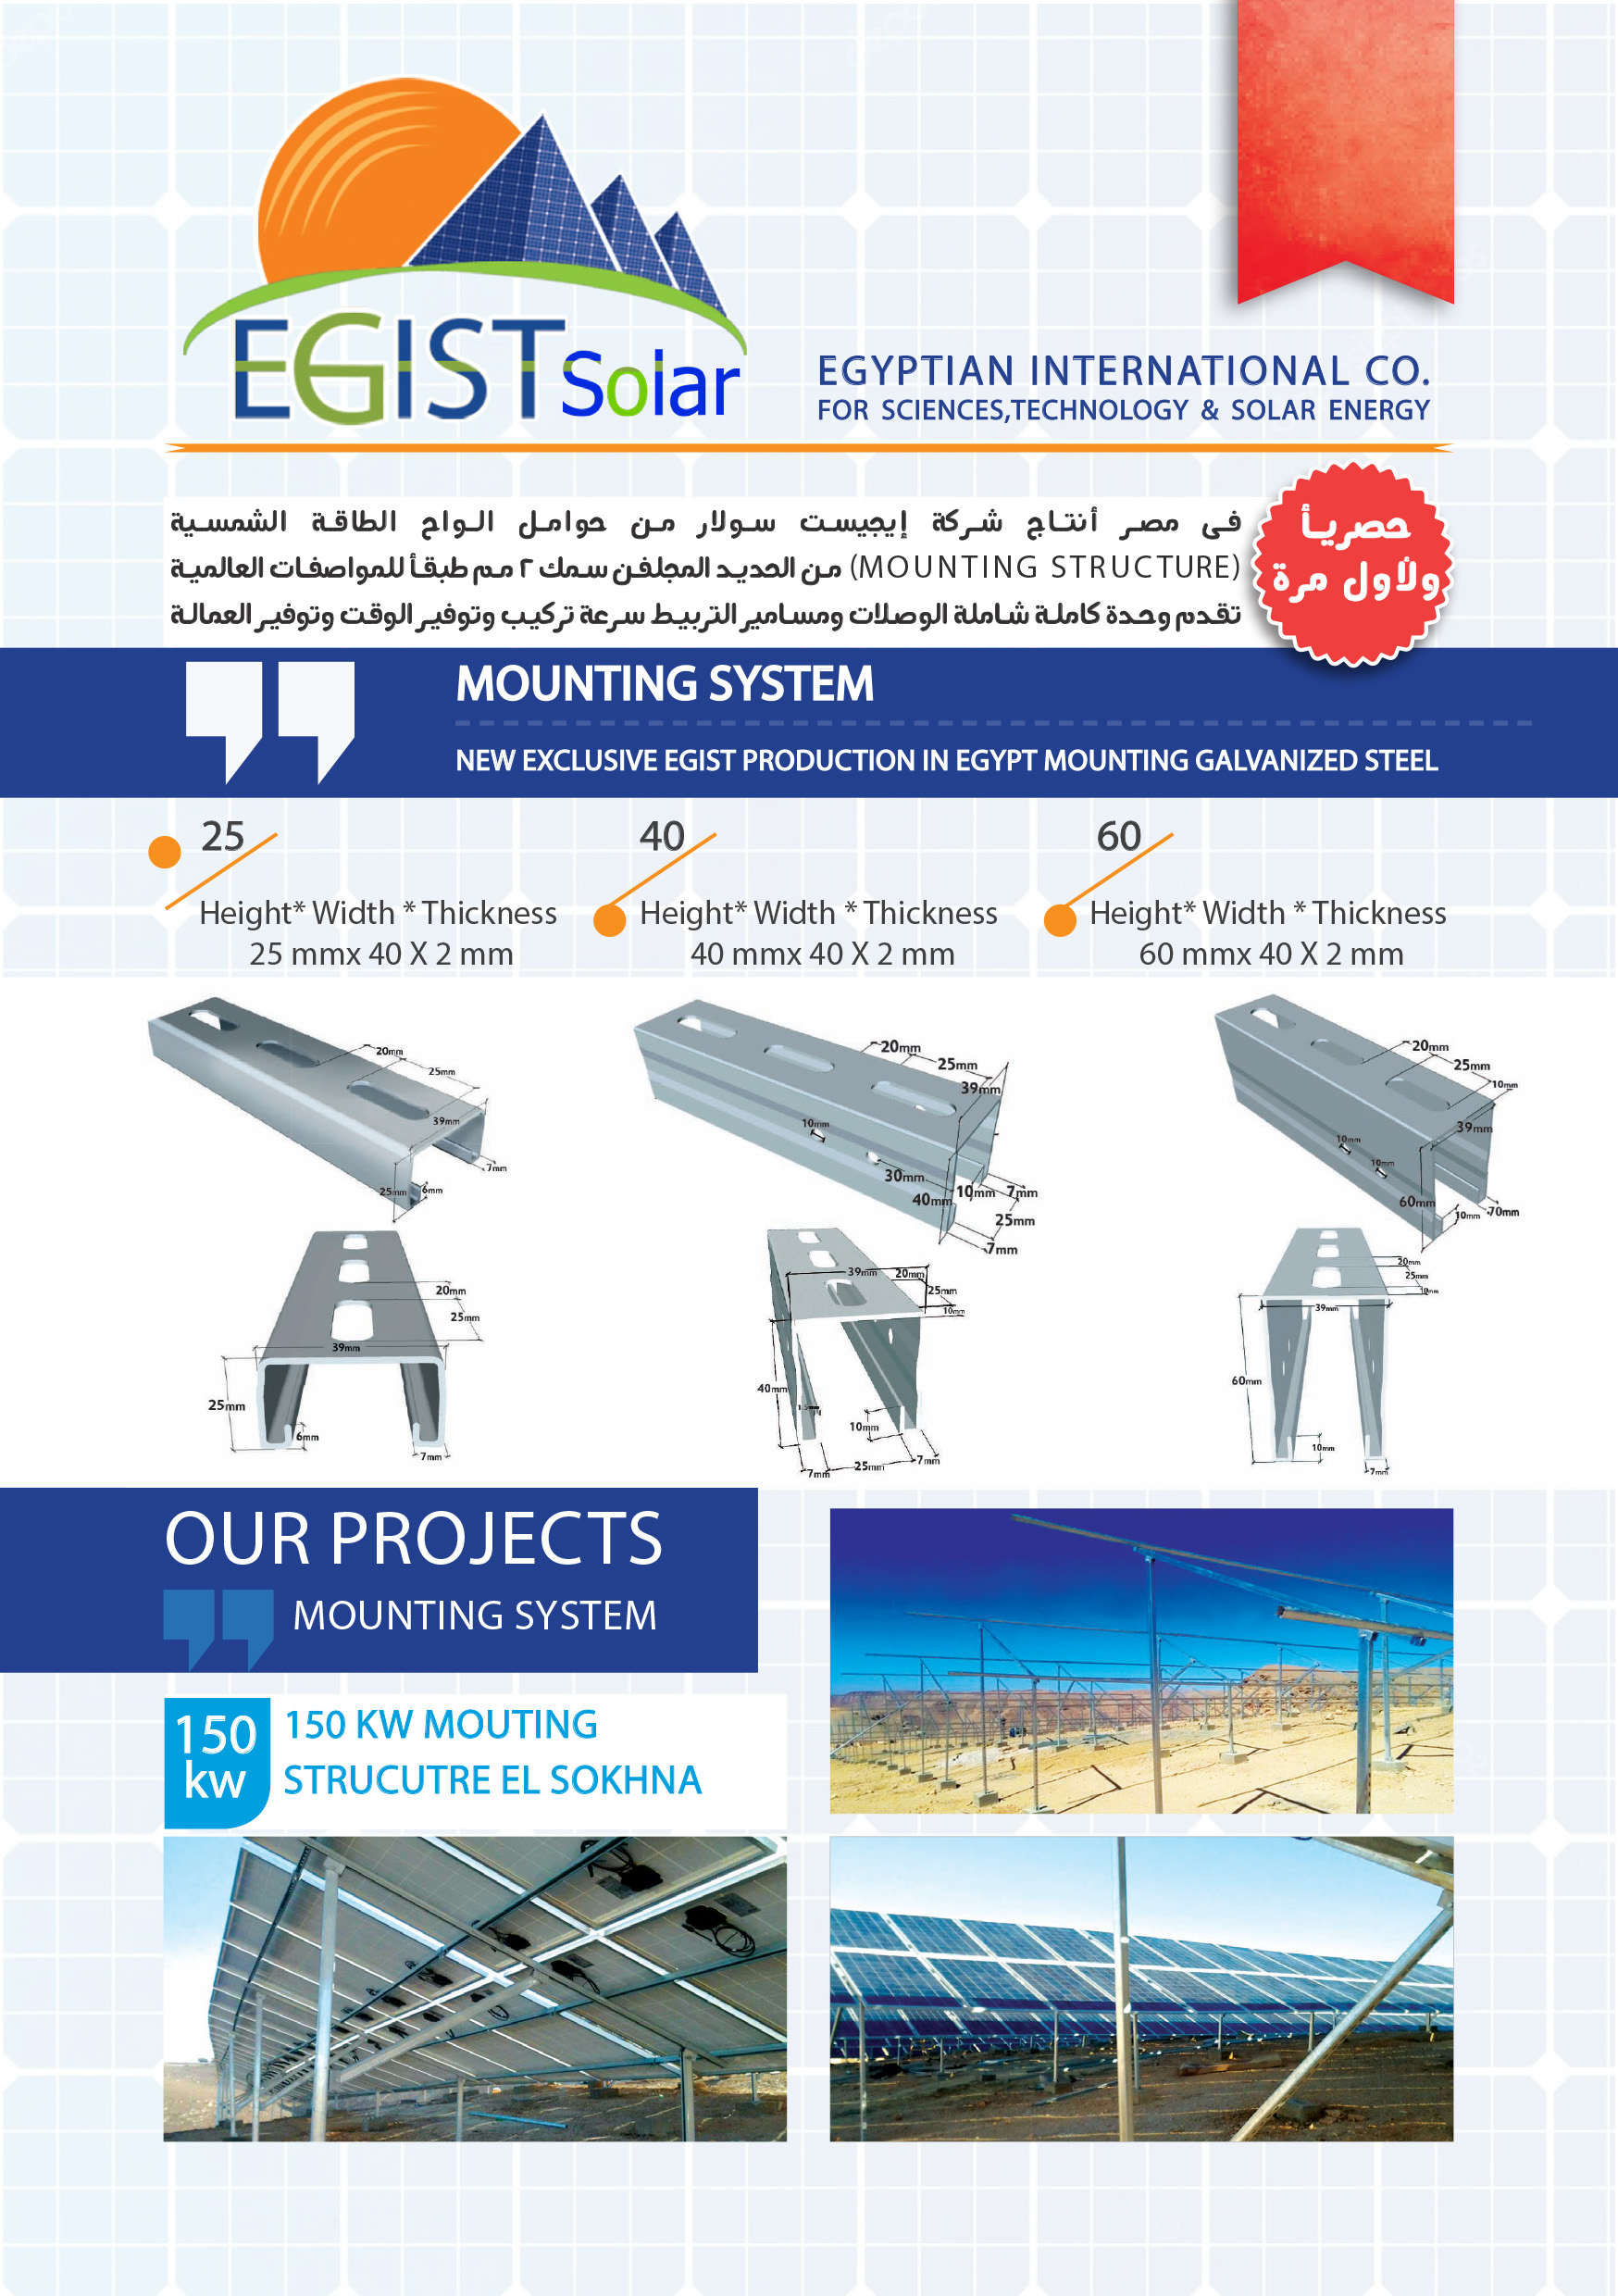 EGIST SOLAR FOR MOUNTING STRUCTURE EG 01